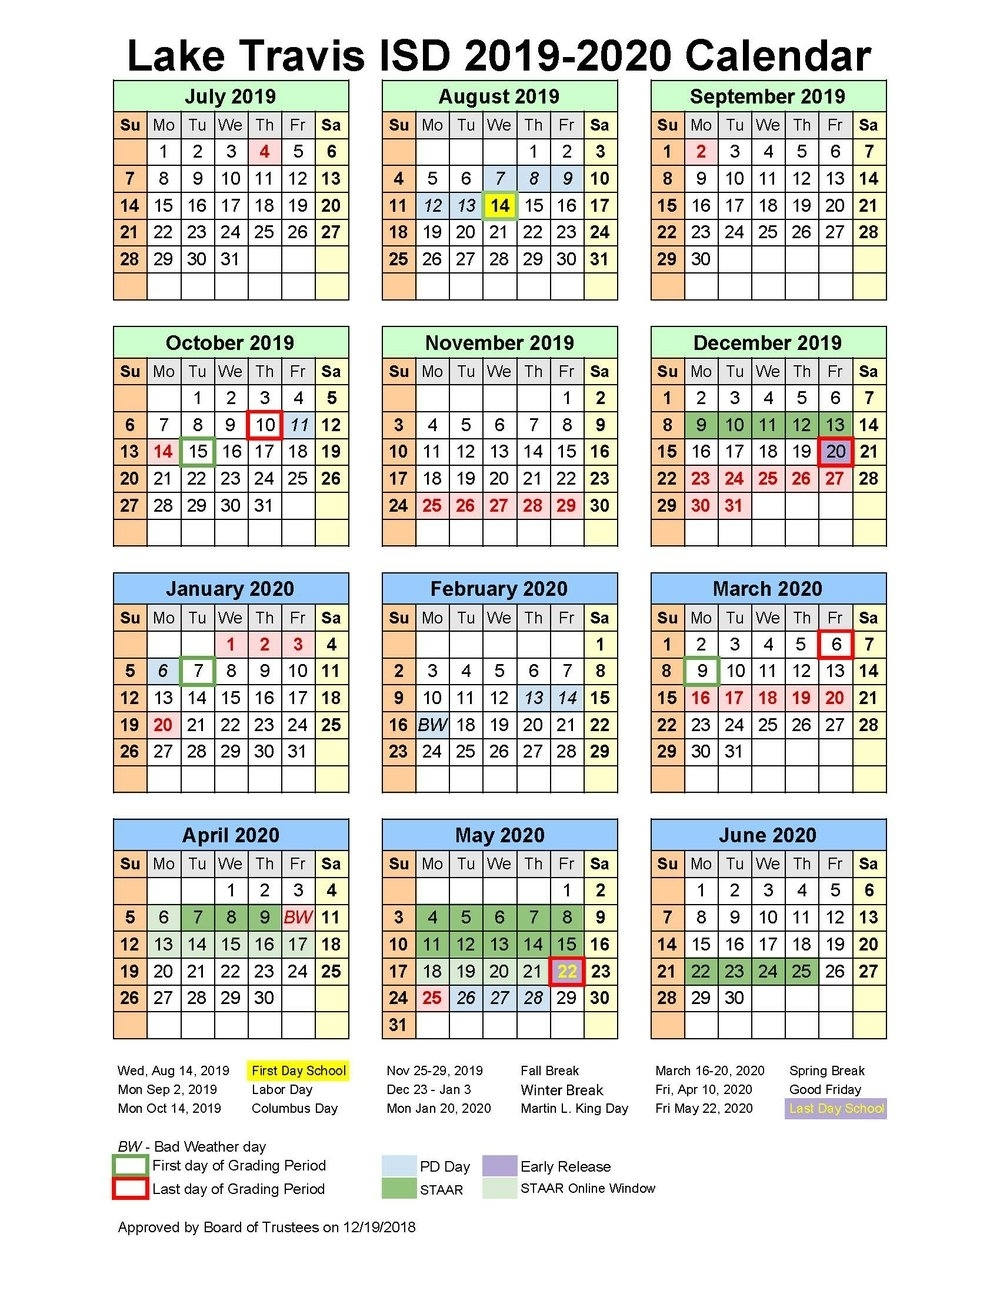 School Matters within Sfasu School Schedule 2019 2020